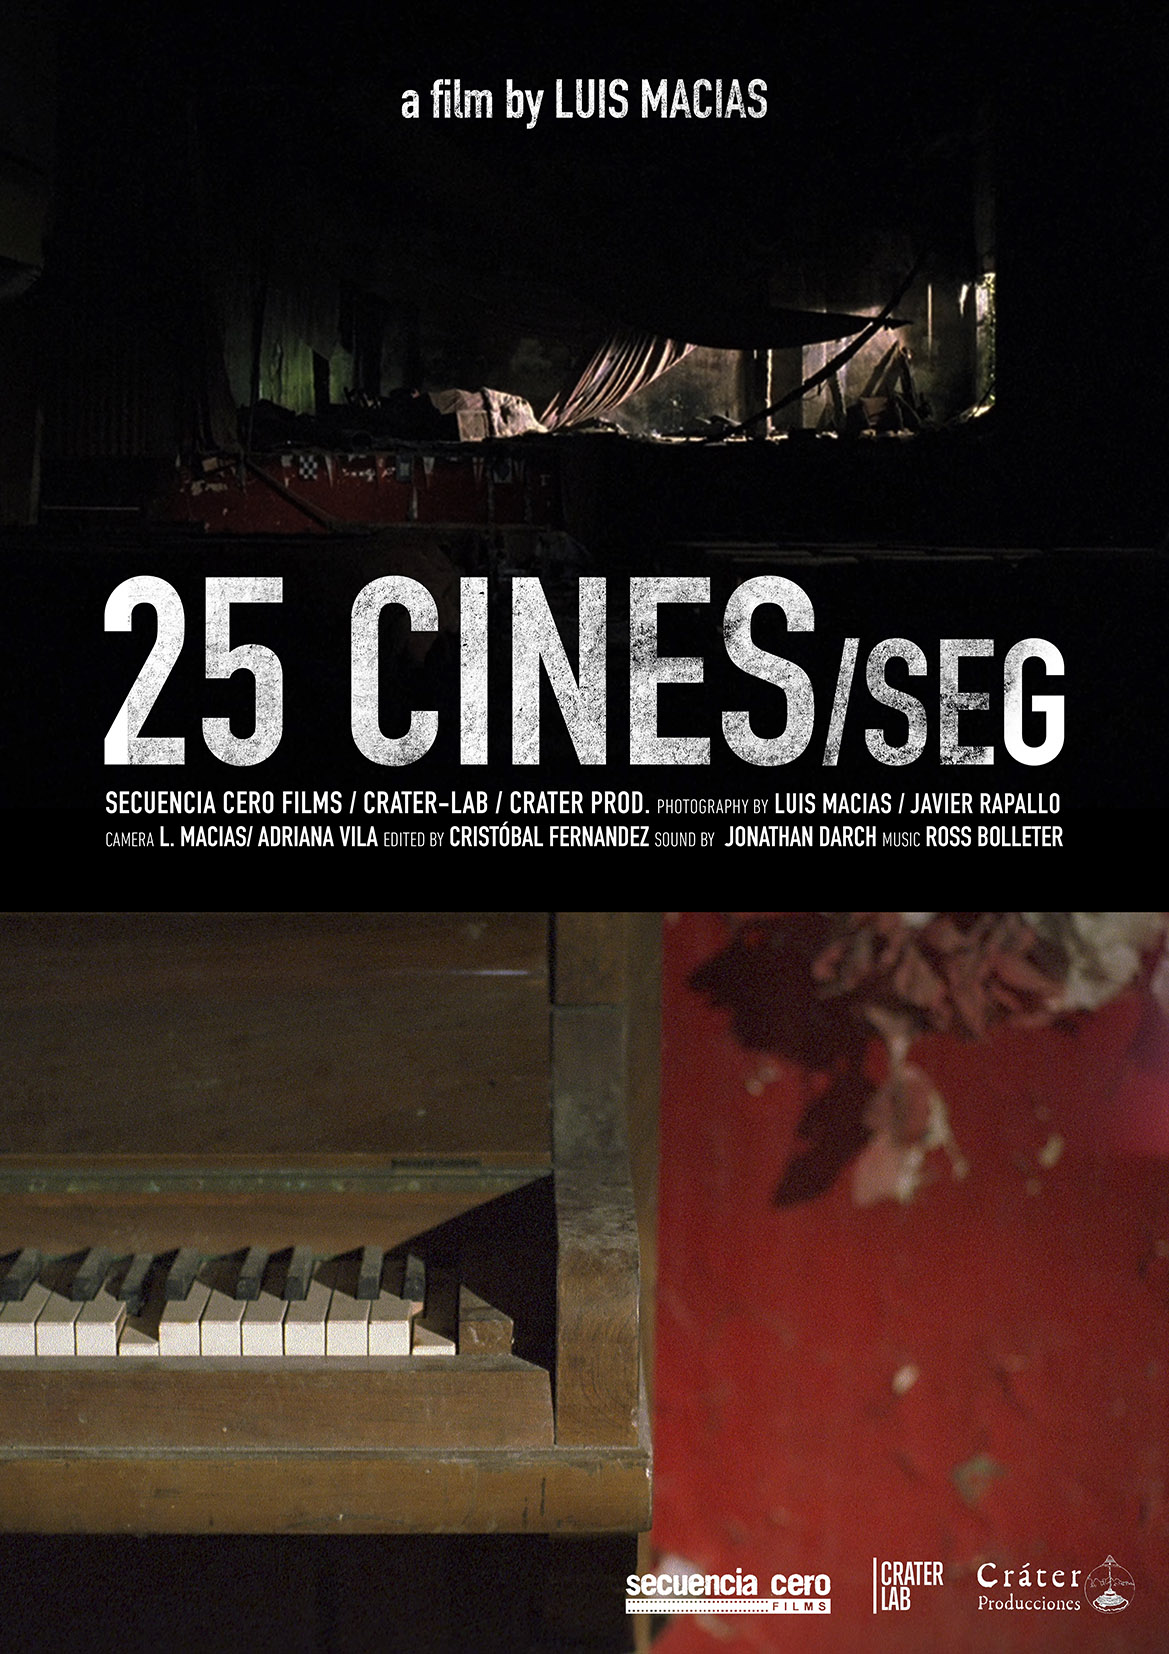 25Cines_seg Cartel copy